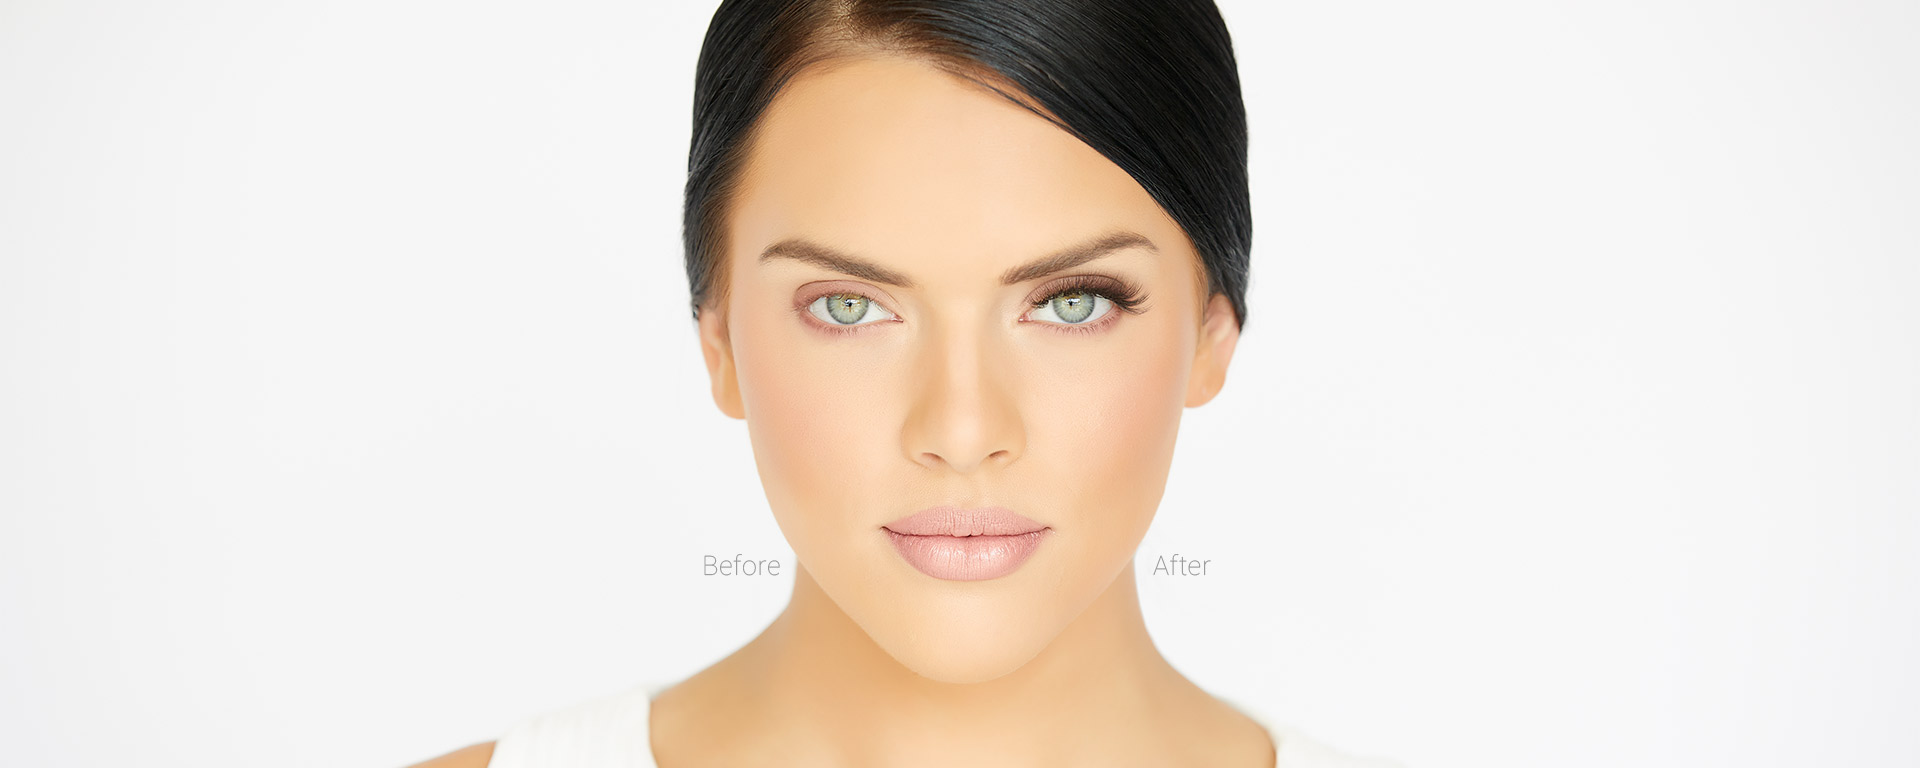 Model's face shown with one eye before and one eye after the application of Amazing Volume Classic (3D) lash extensions